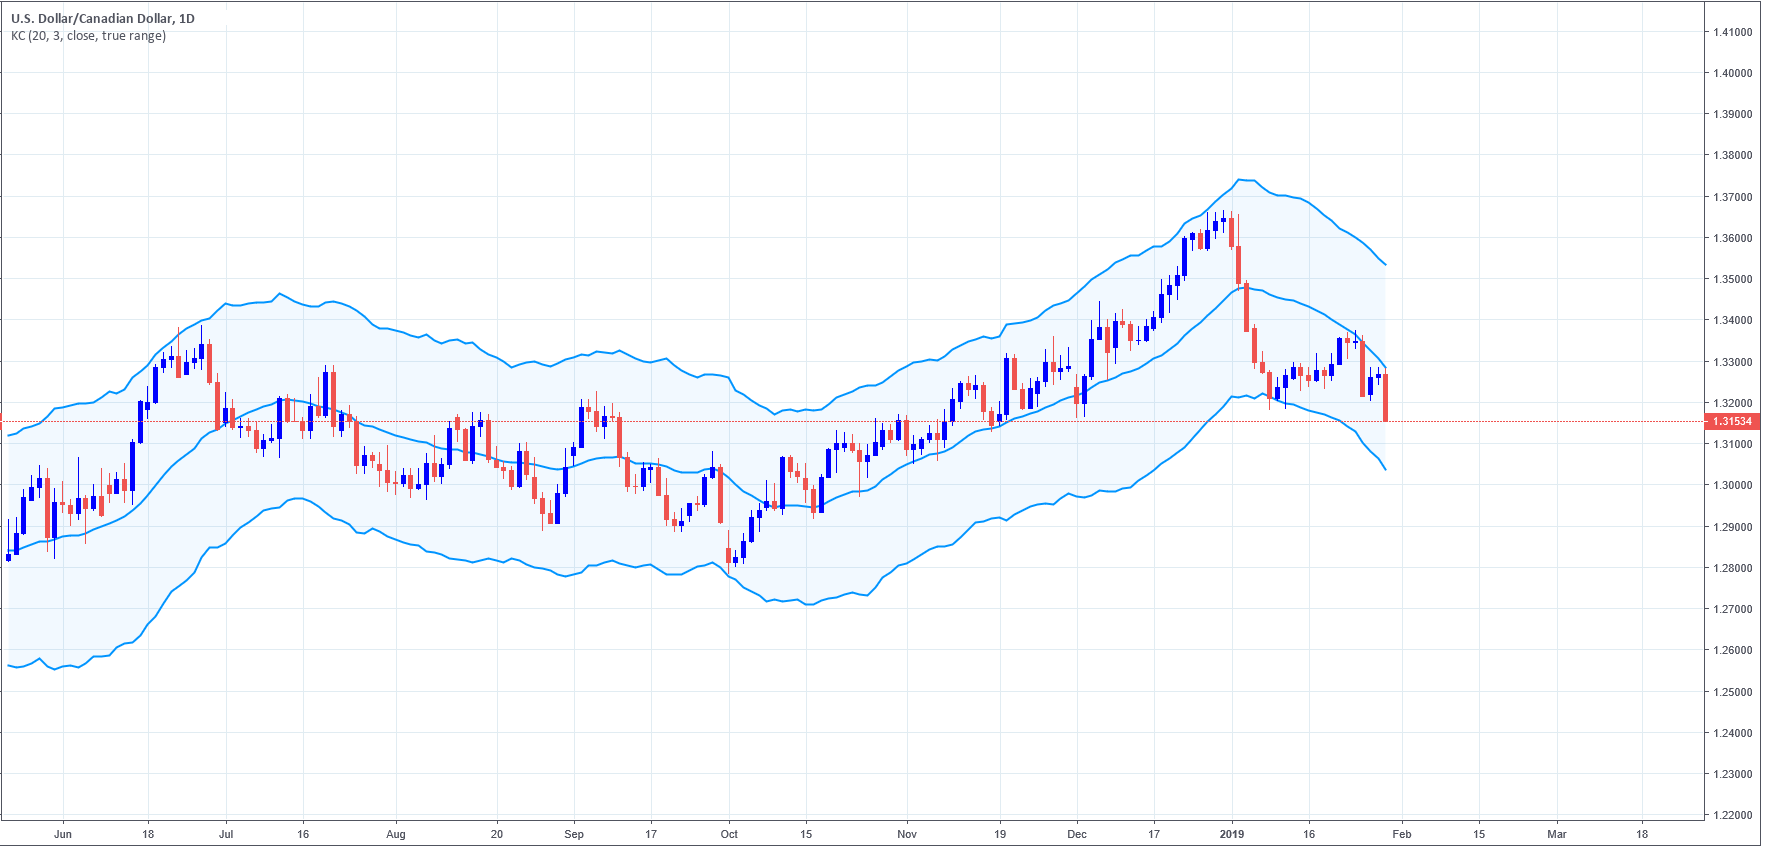 USDCAD daily chart, with Keltner Channel using 20-day simple moving average and multiplier 3